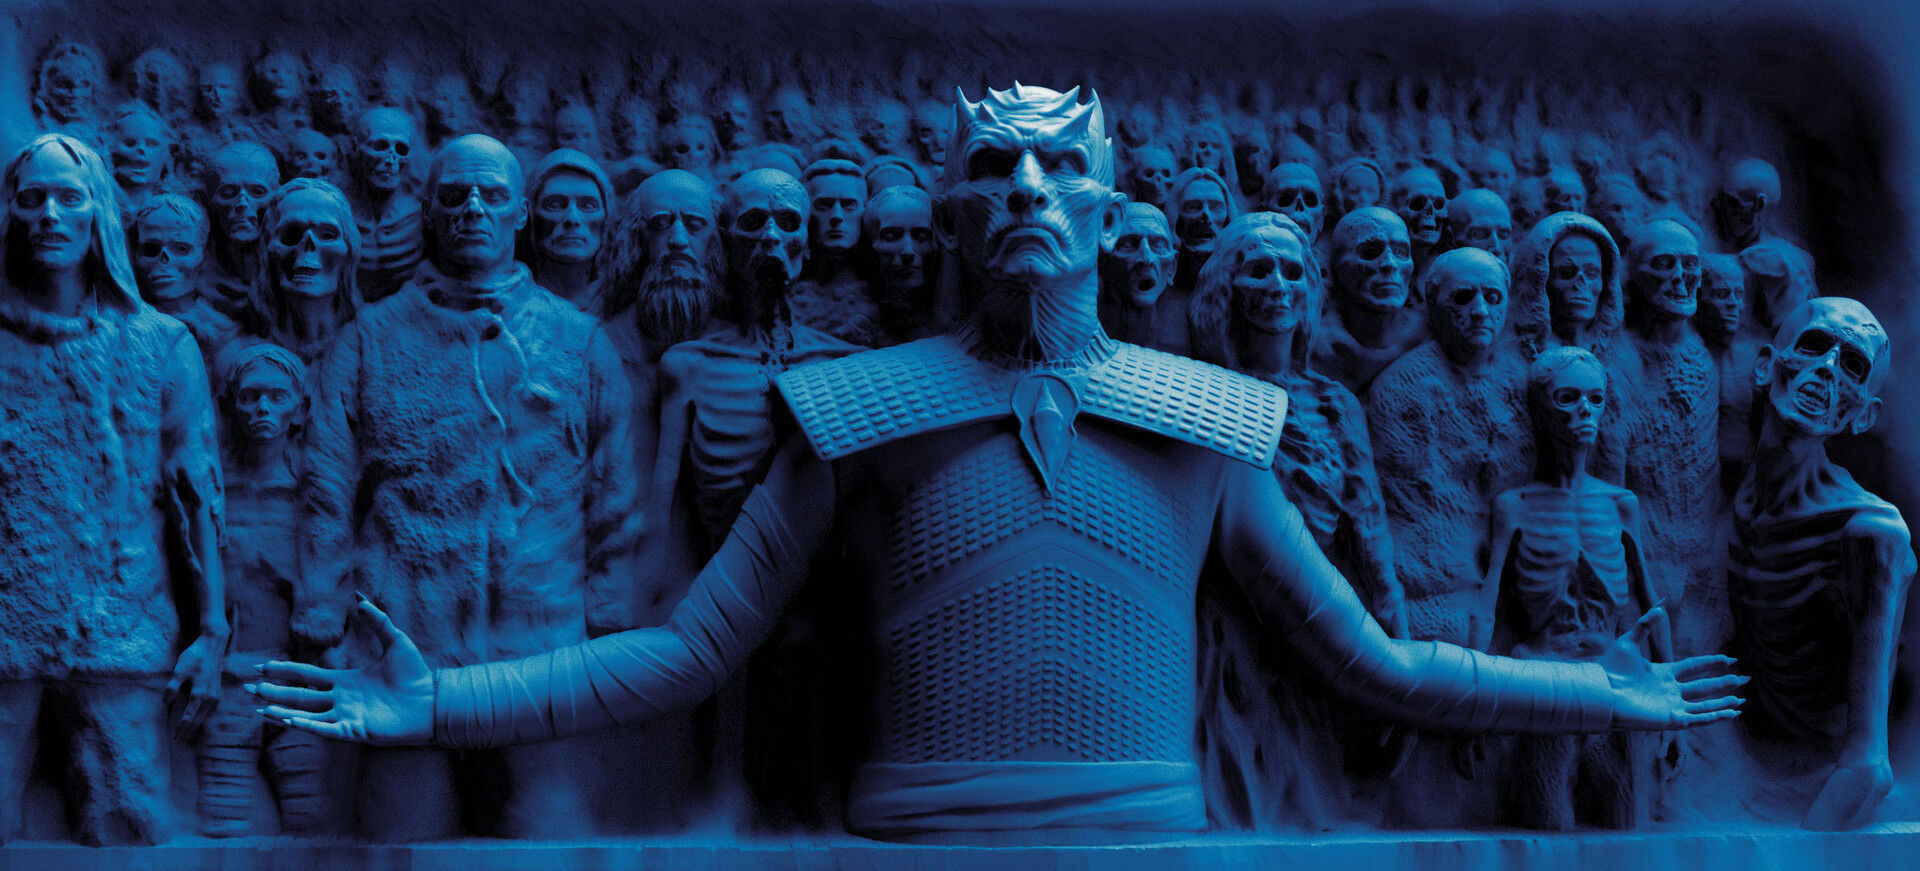 Game of Thrones - Night King - Hardhome Relief